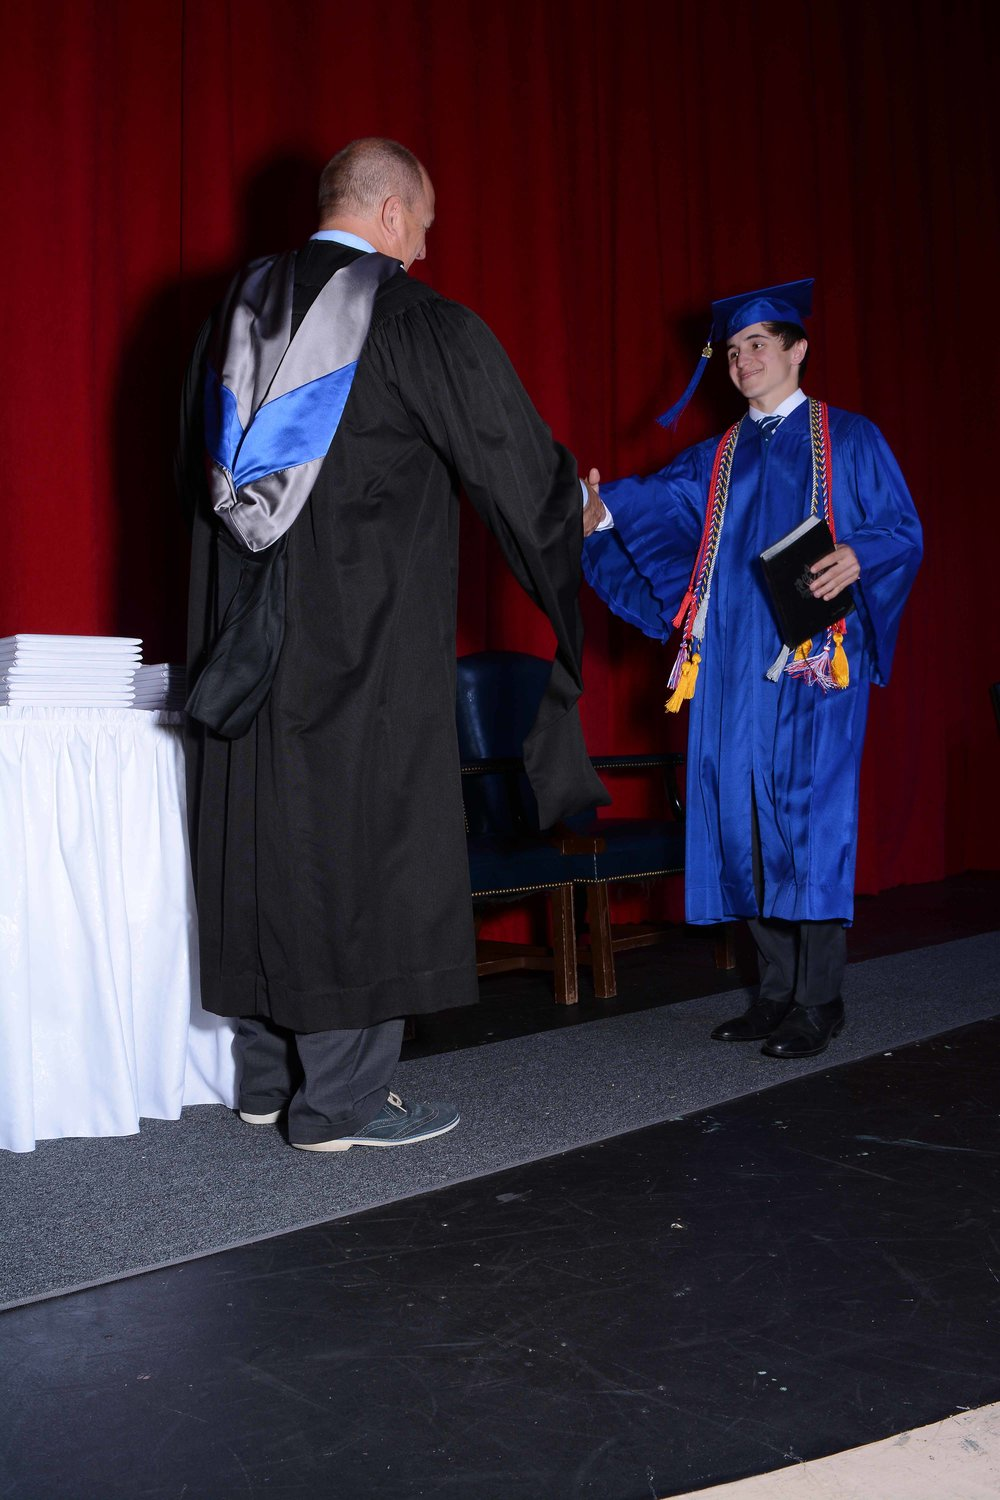 May14 Commencement90.jpg